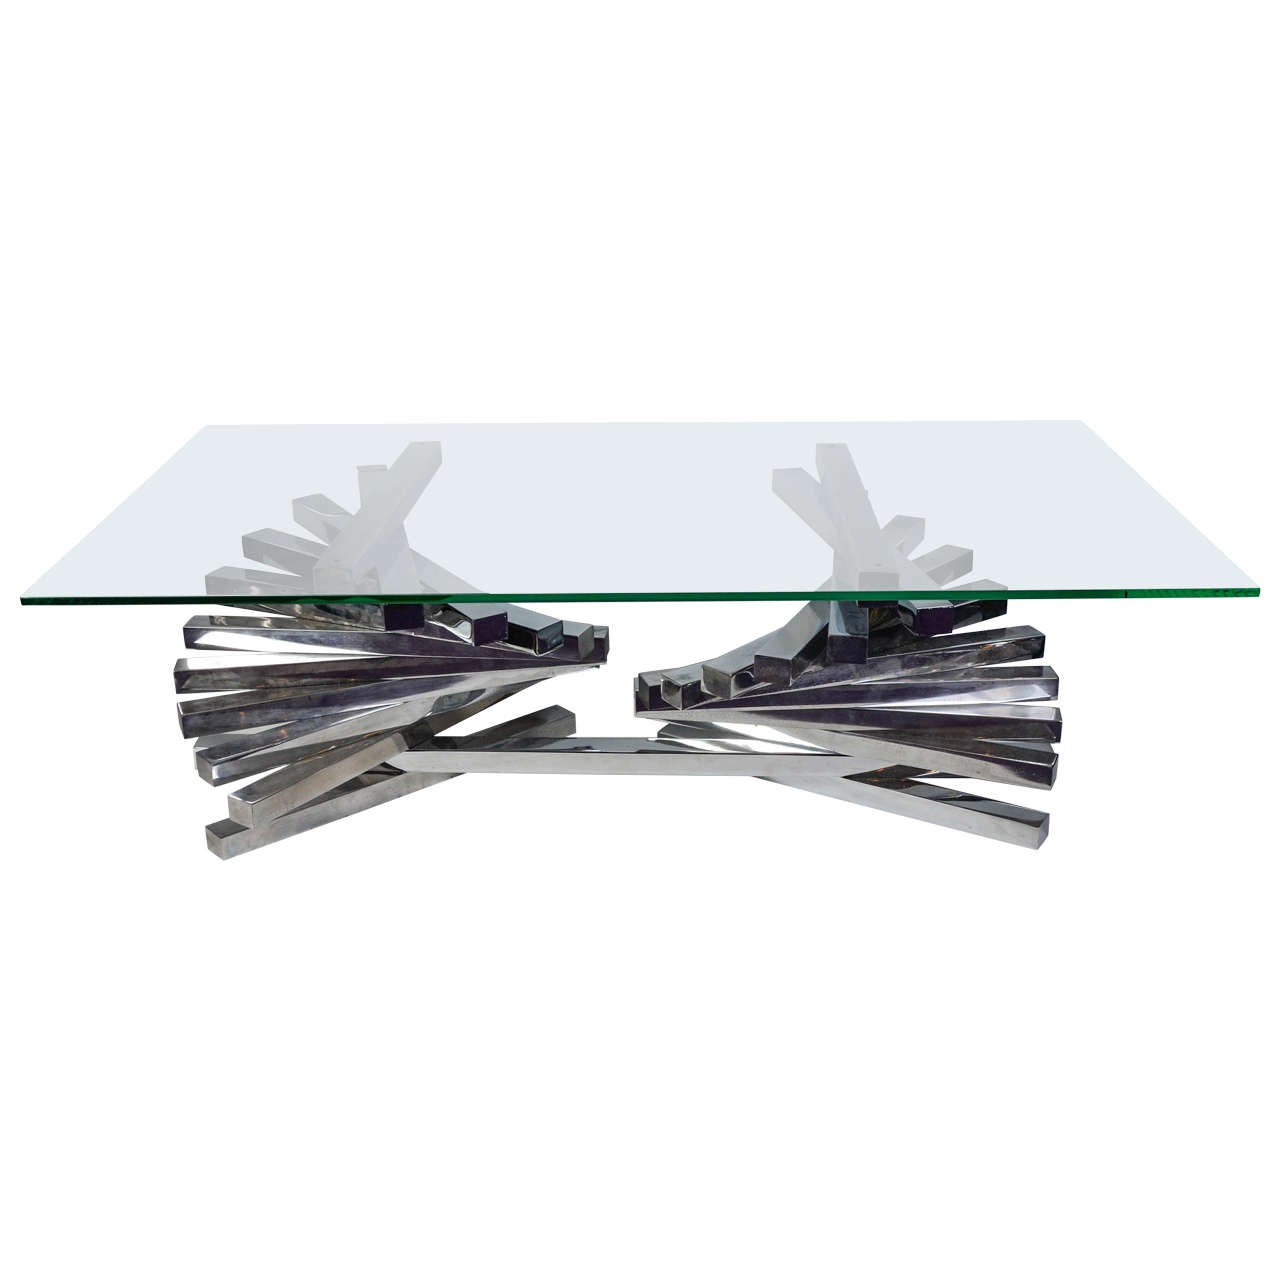 Chrome Coffee Table With Glass Top: Chrome Metal And Glass Top Coffee Table At 1stdibs